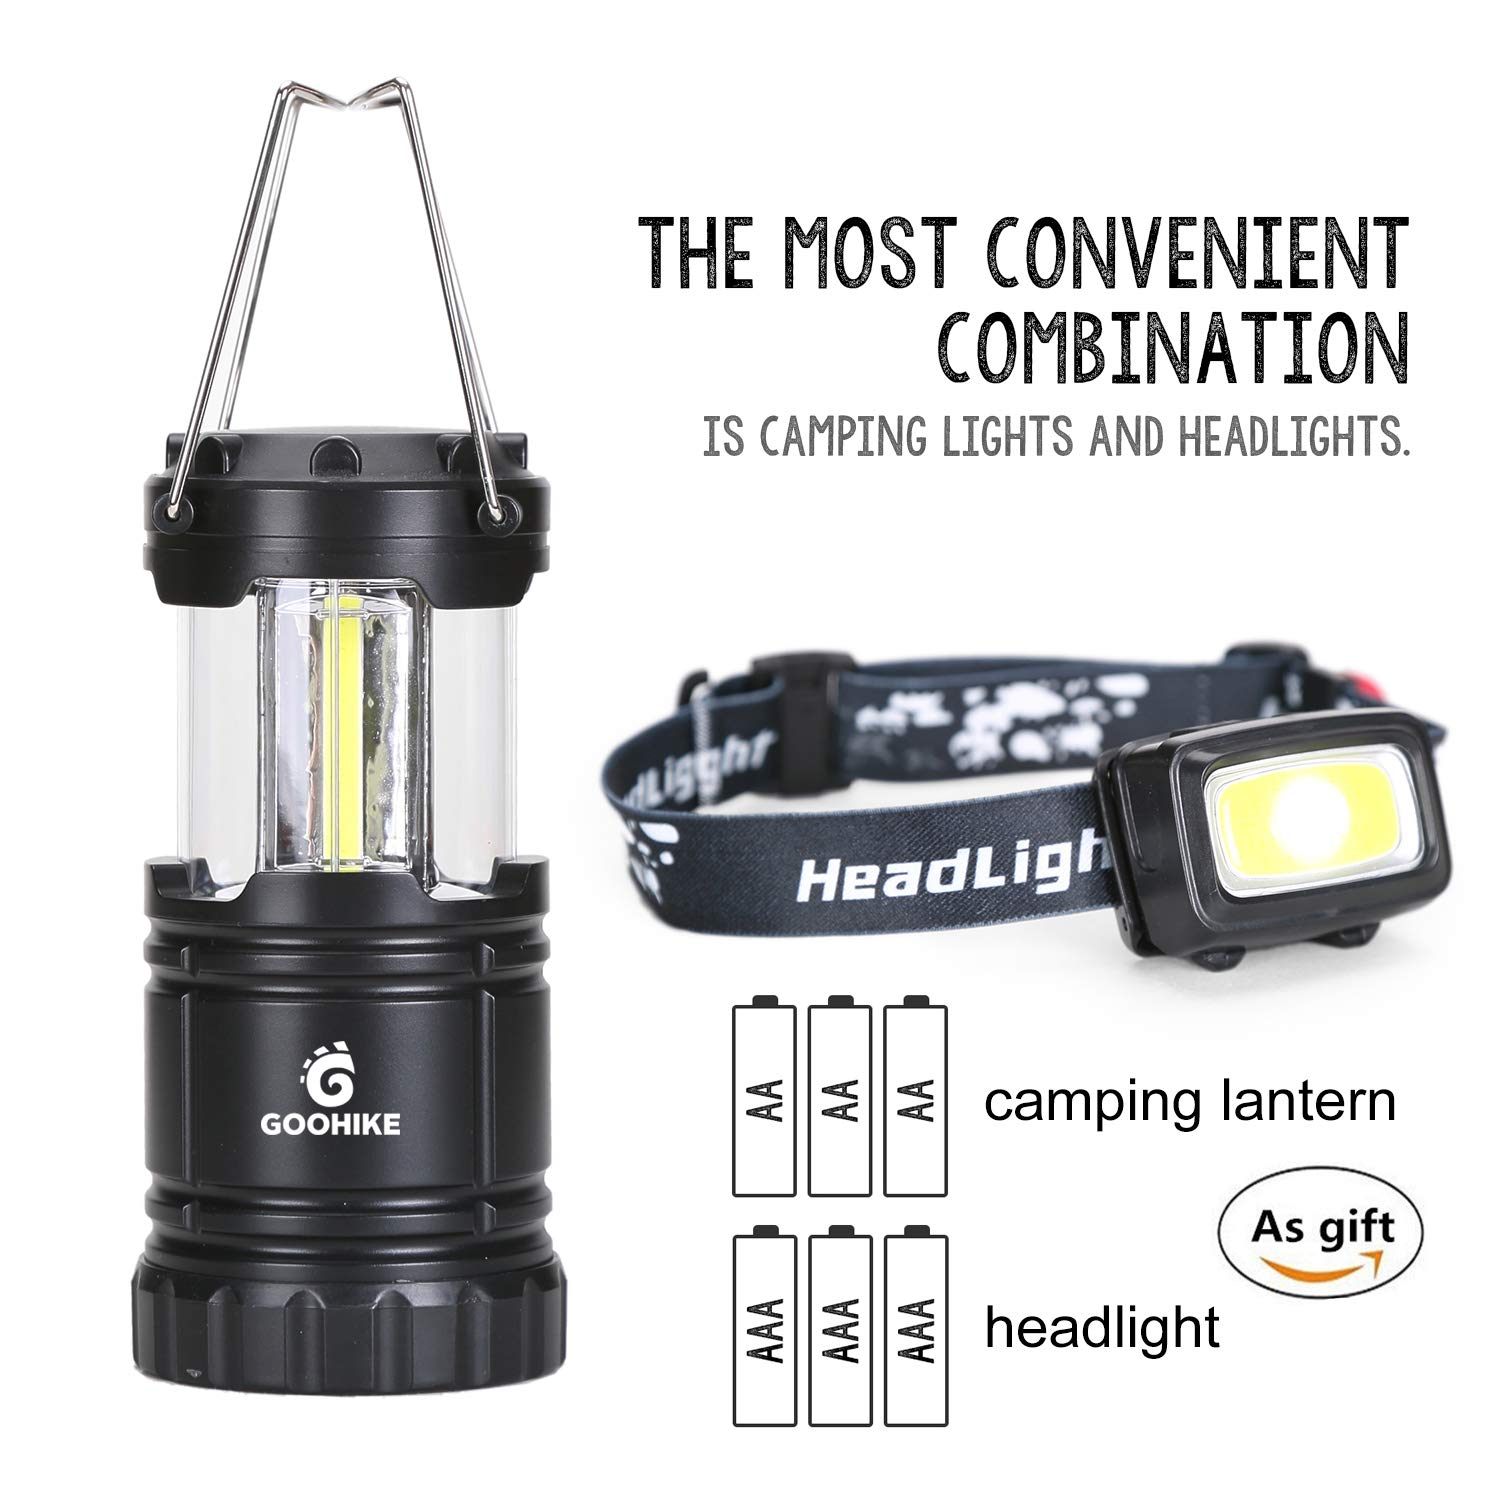 Goohike Camping Lantern & Headlamp Set, Super Bright Multipurpose Headlight Flashlight Suitable for Emergencies, Camping, Hiking, Power Outages, Night Walk, Night Fishing